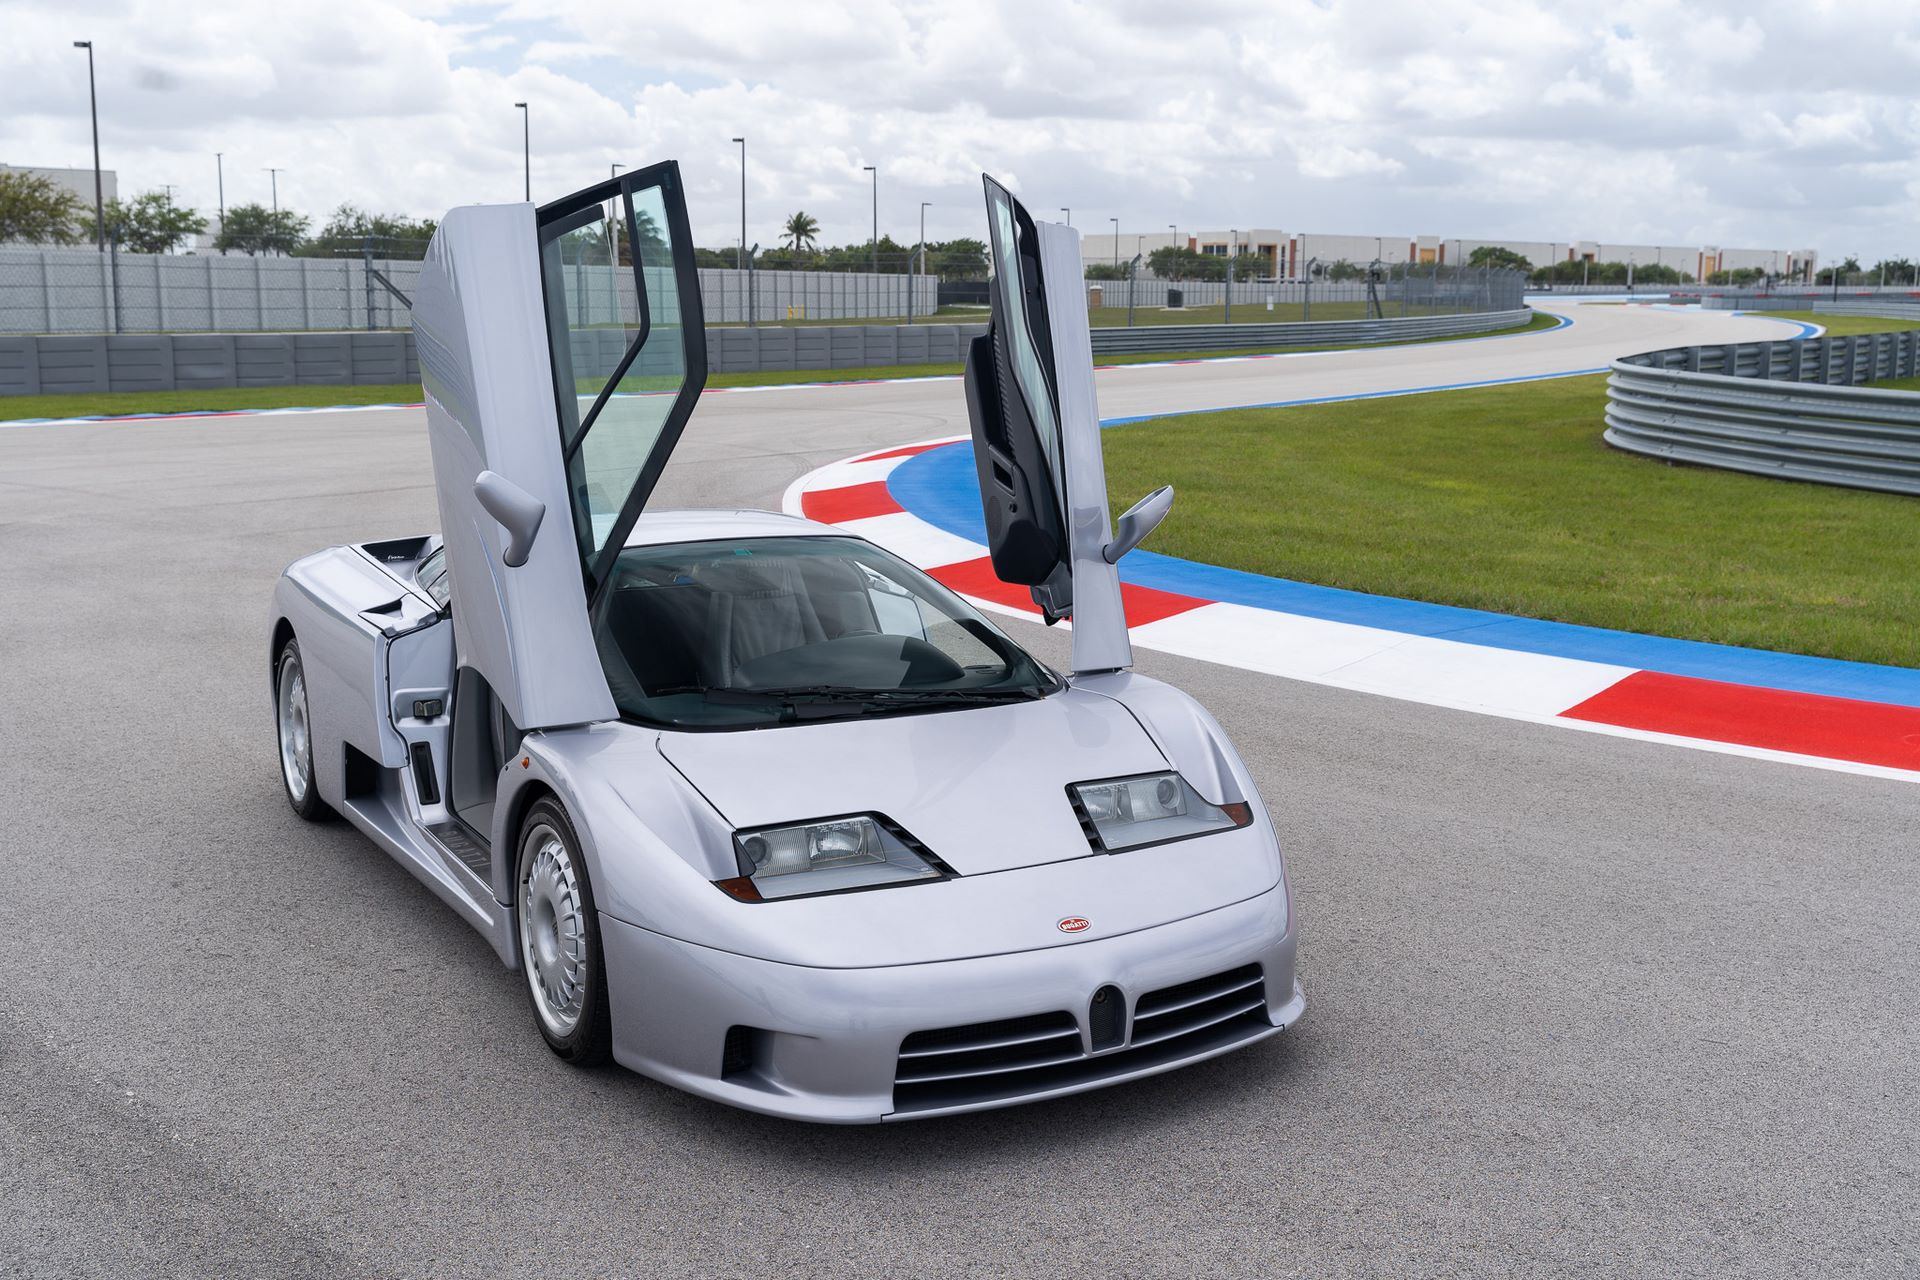 Bugatti-EB110-GT-demo-car-for-sale-1